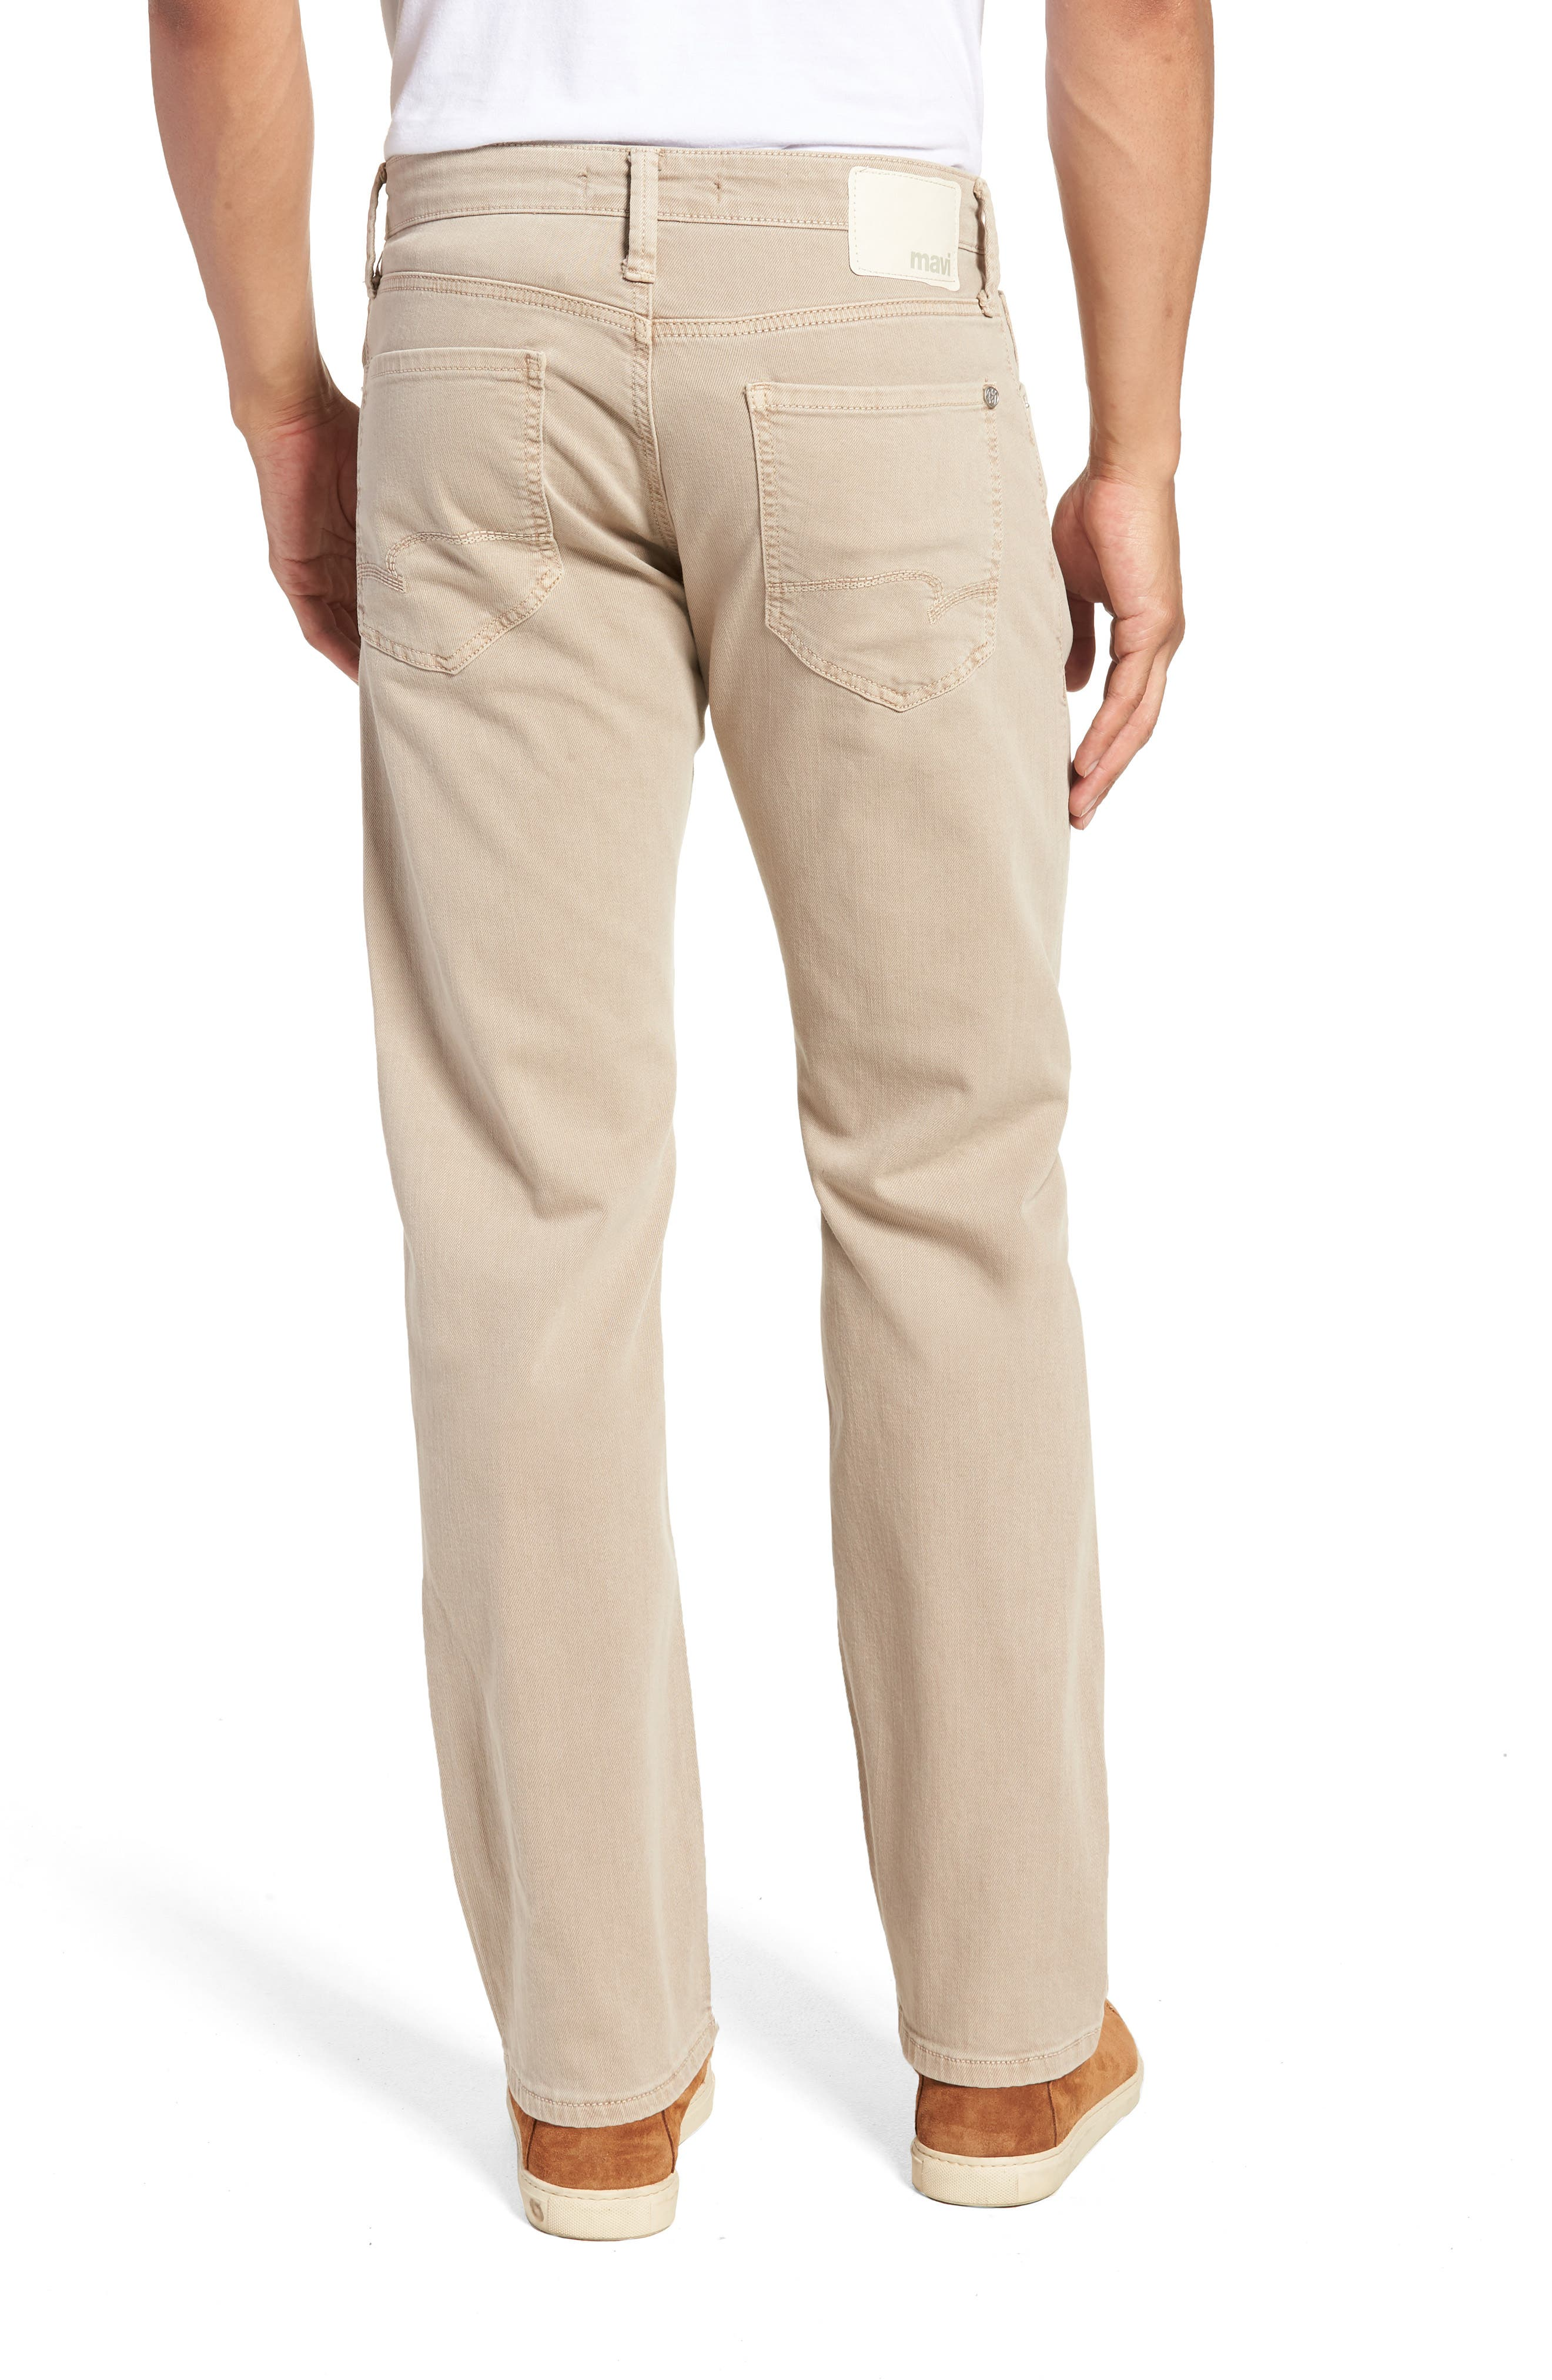 Zach Straight Leg Twill Pants,                             Alternate thumbnail 2, color,                             Tan Washed